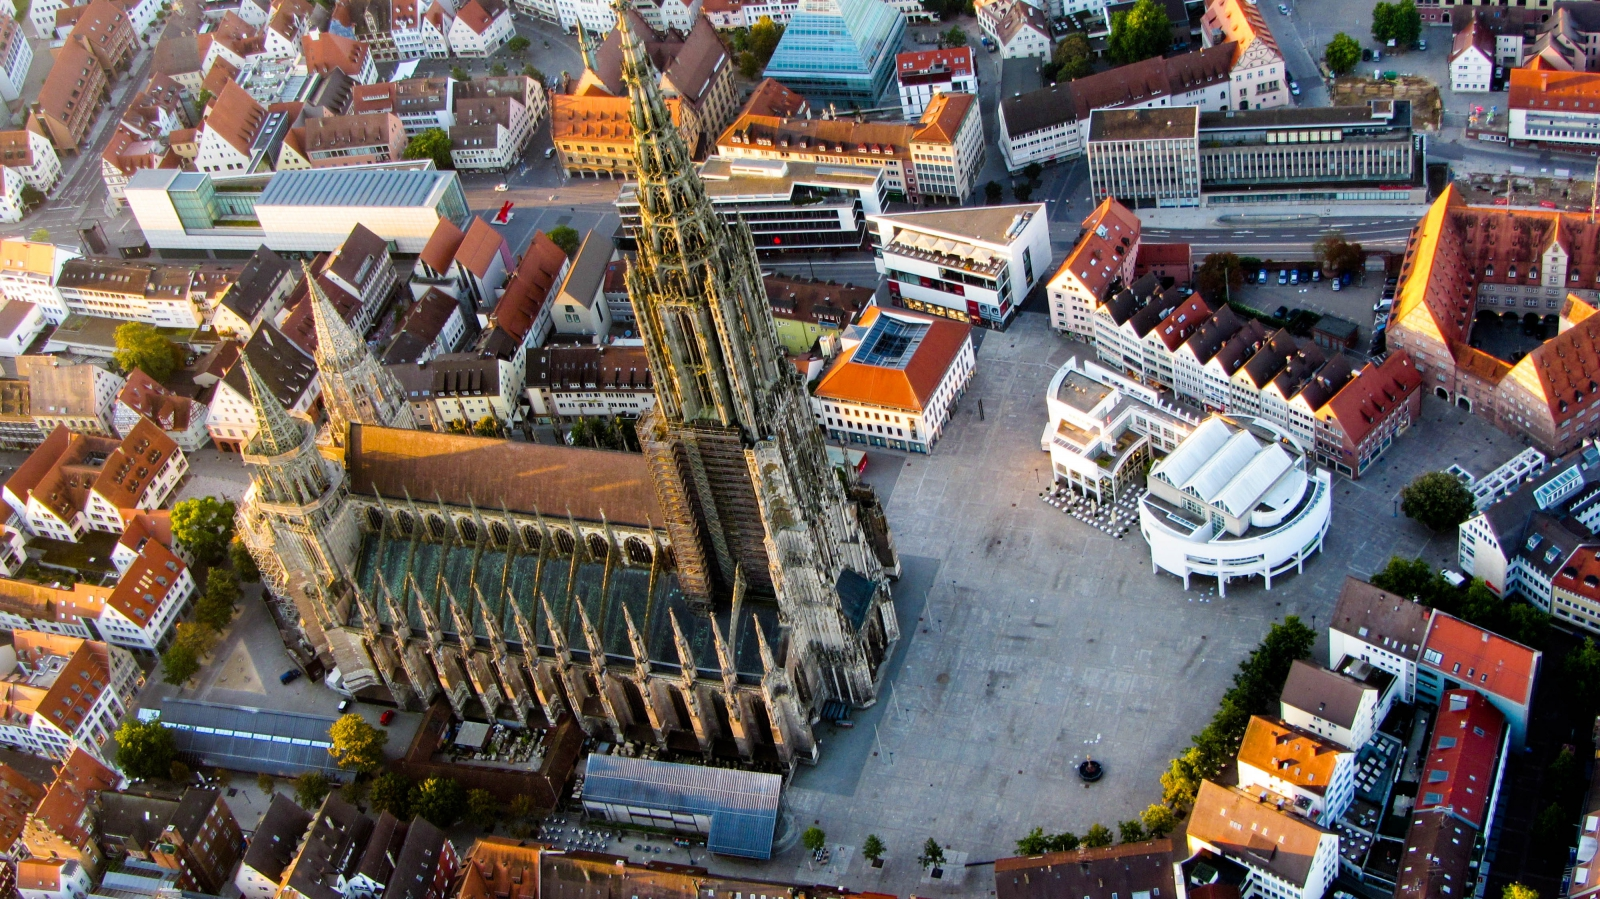 ulm-cathedral-1169940